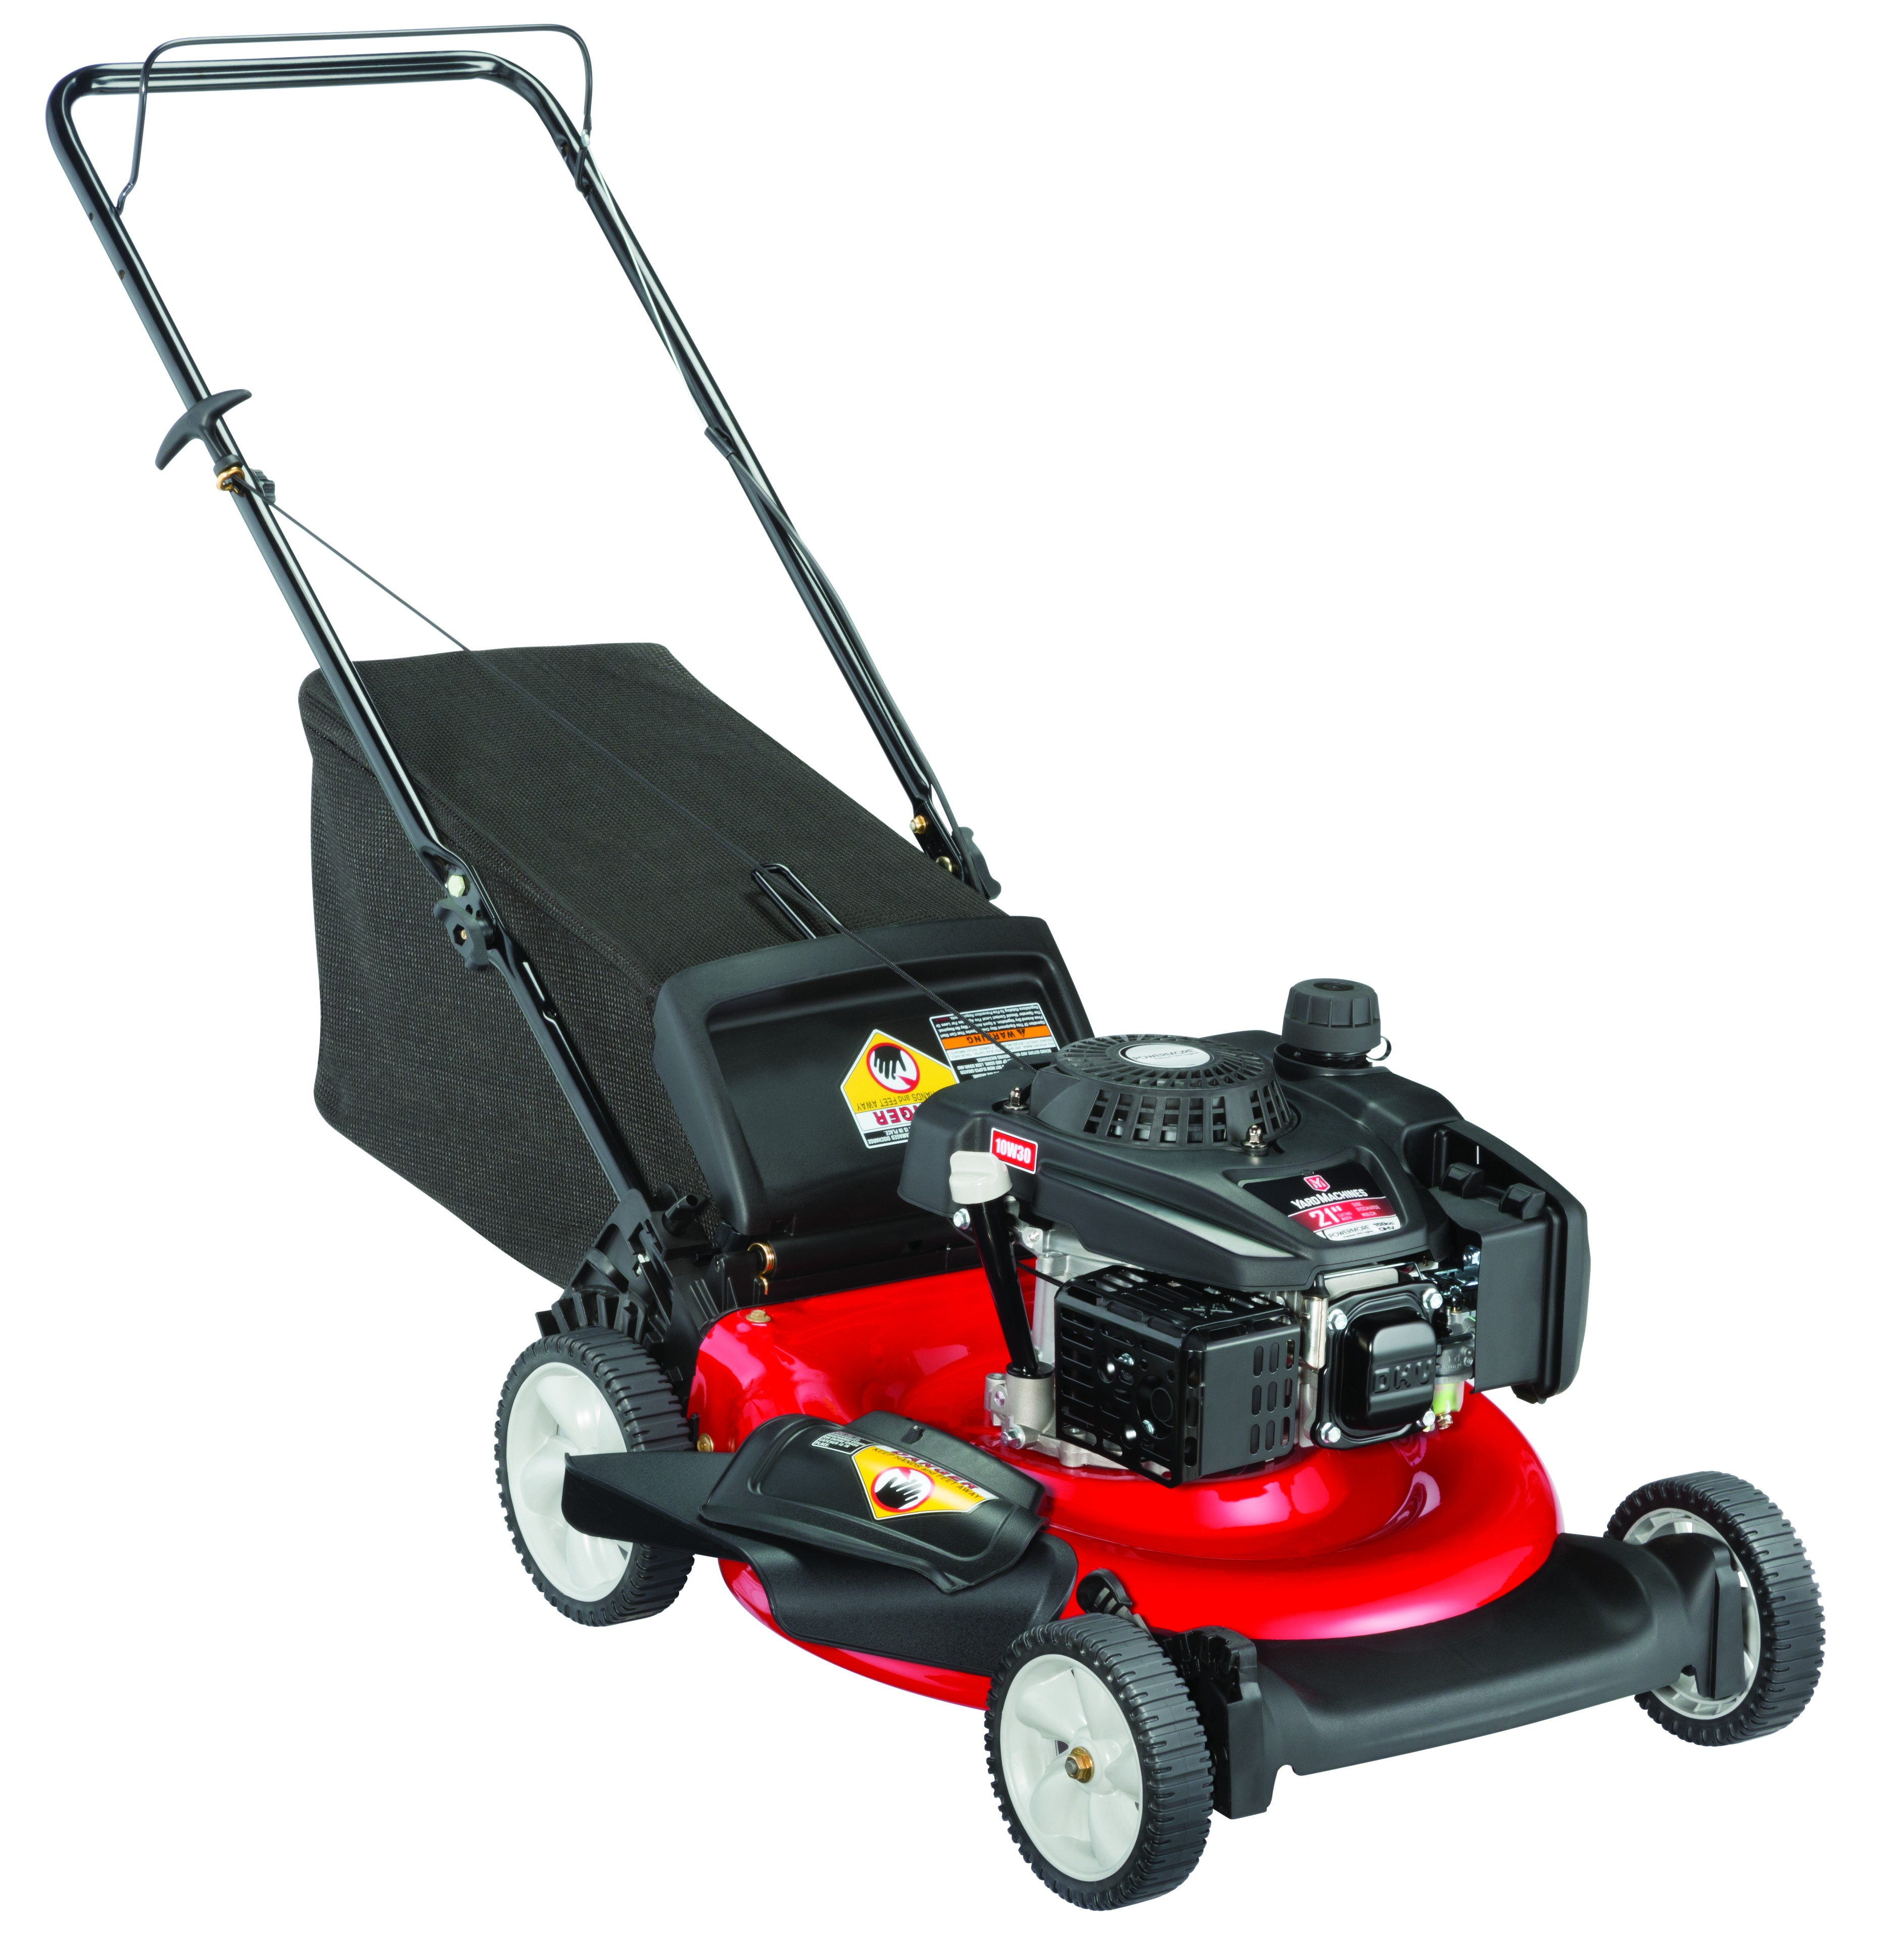 "Yard Machines 21"" Gas Push Mower with Side Discharge, Mulching and Rear Bag"